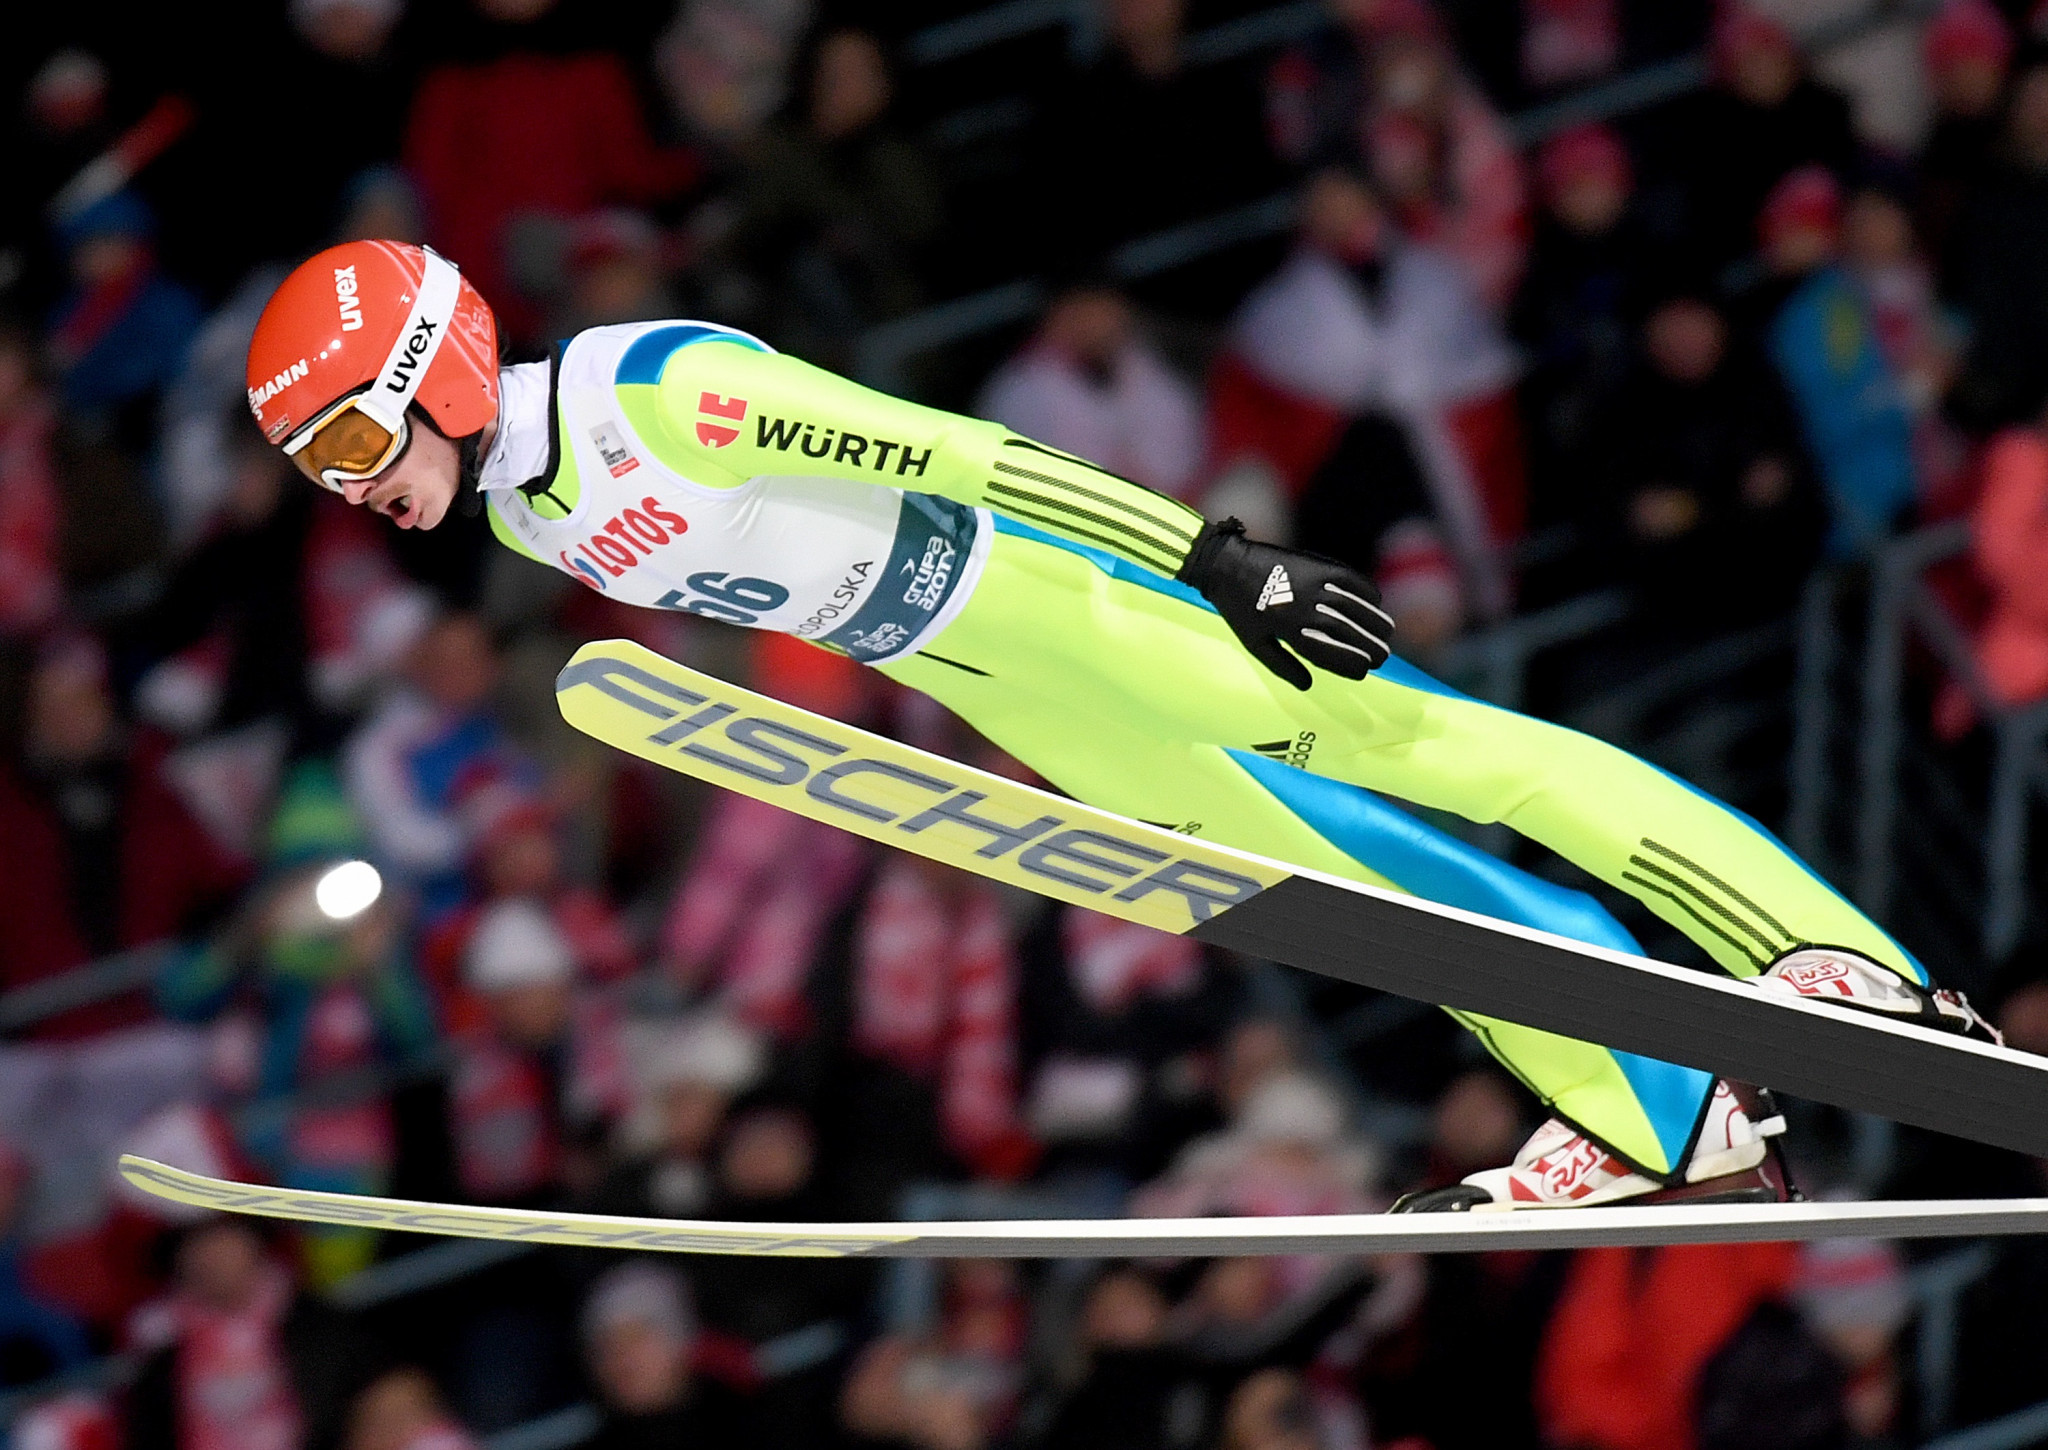 Germany's Richard Freitag finished second in qualification ©Getty Images